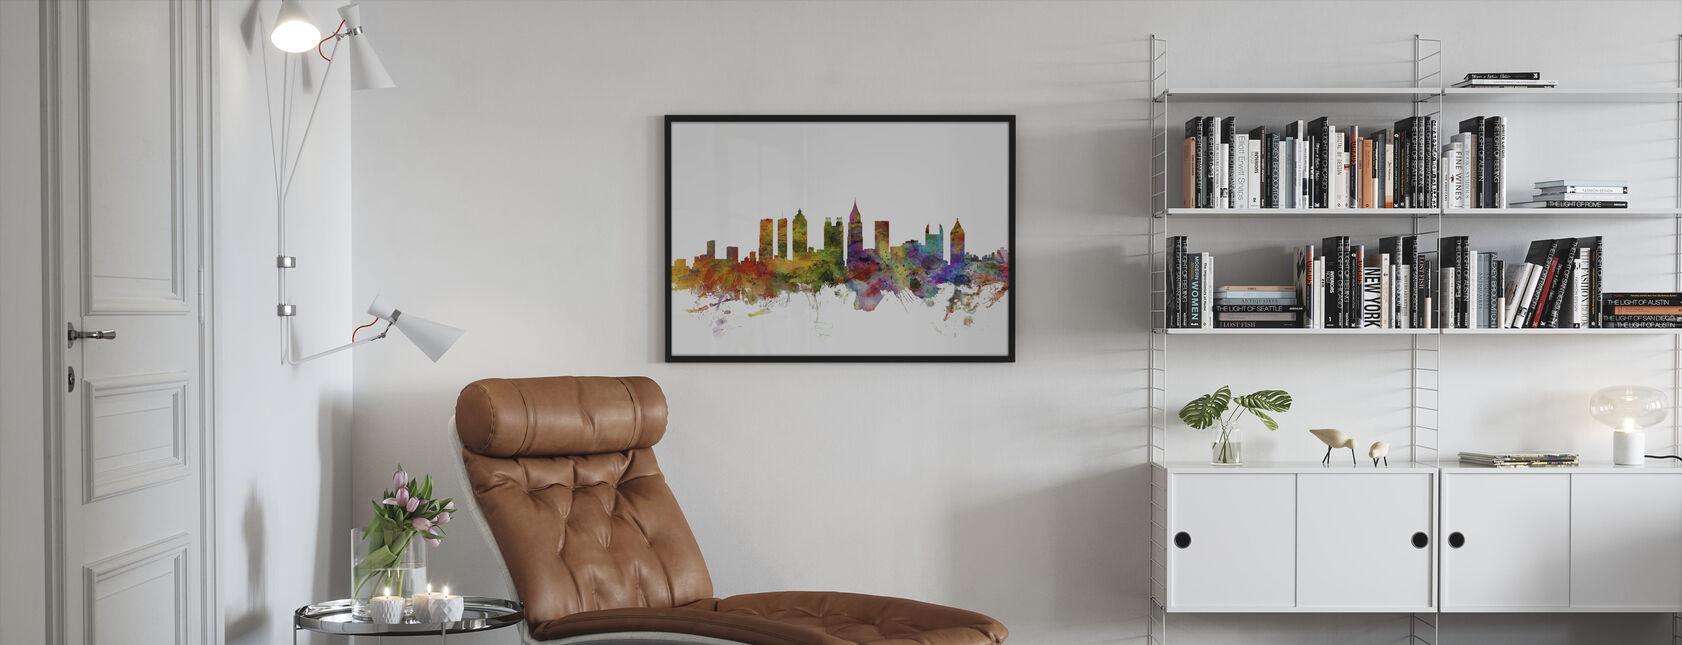 Atlanta Georgia Skyline - Framed print - Living Room